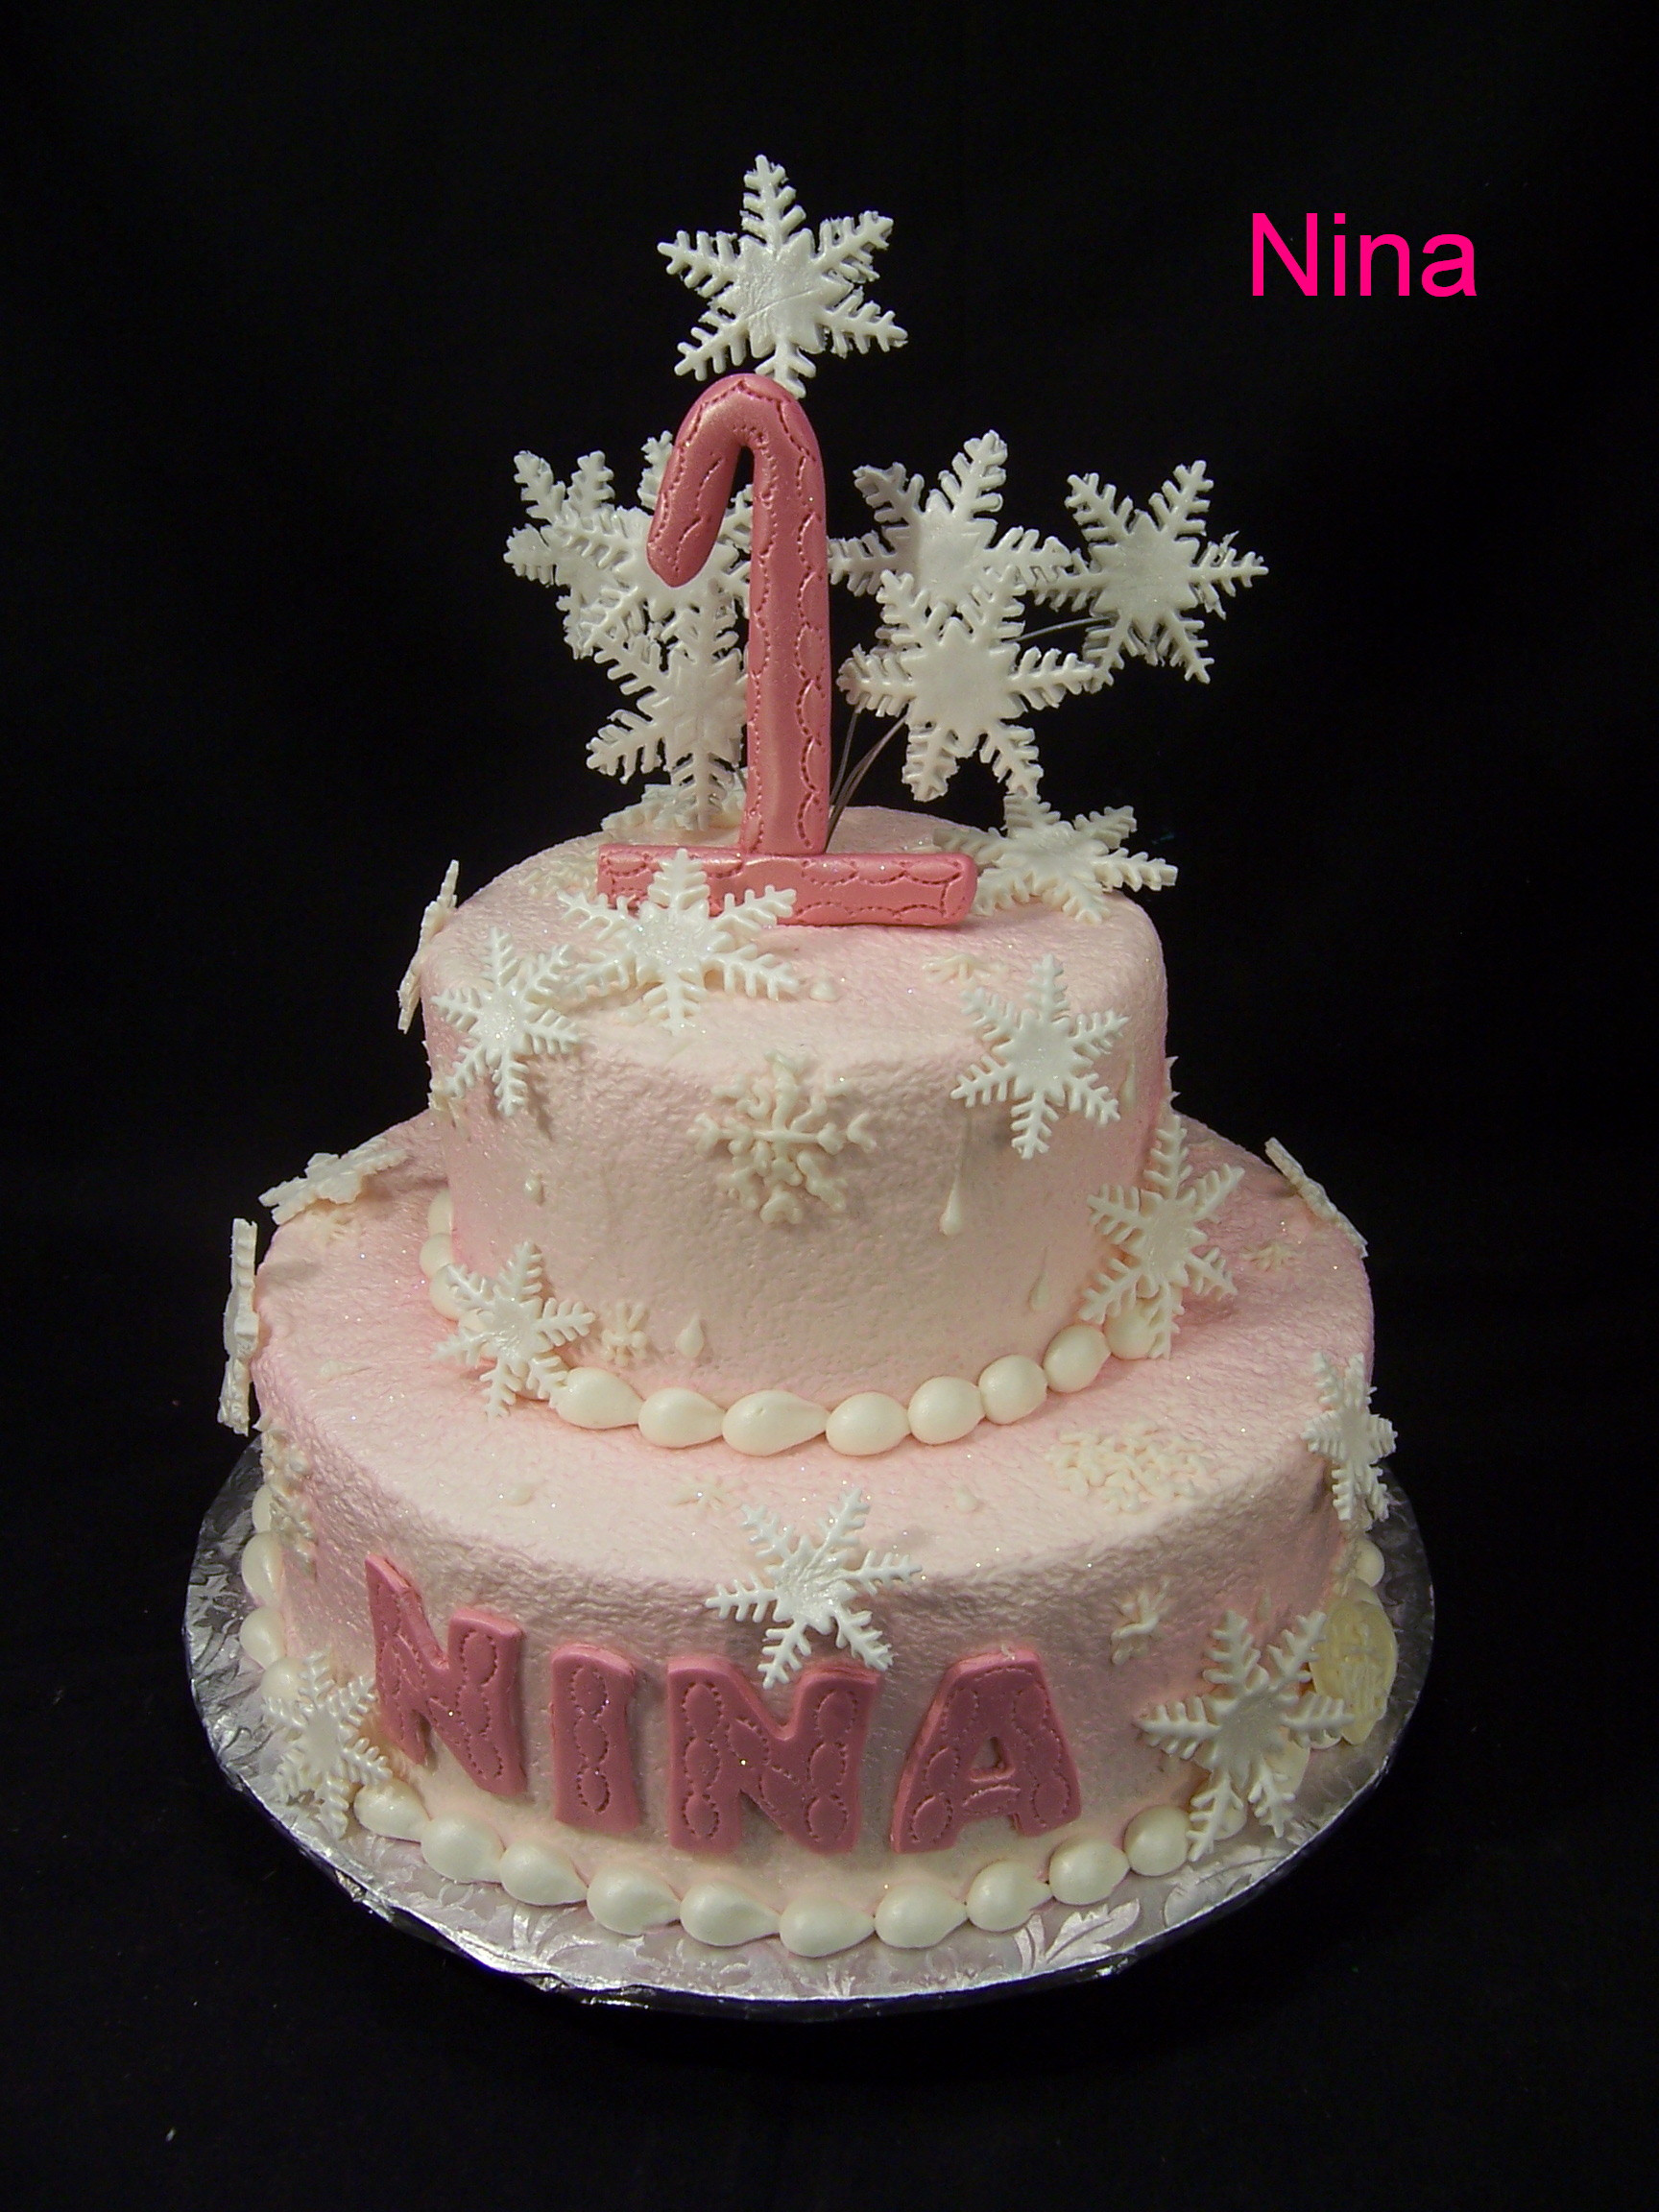 Best ideas about Sam Club Bakery Birthday Cake Designs . Save or Pin Sams Club Wedding Cake Ideas and Designs Now.